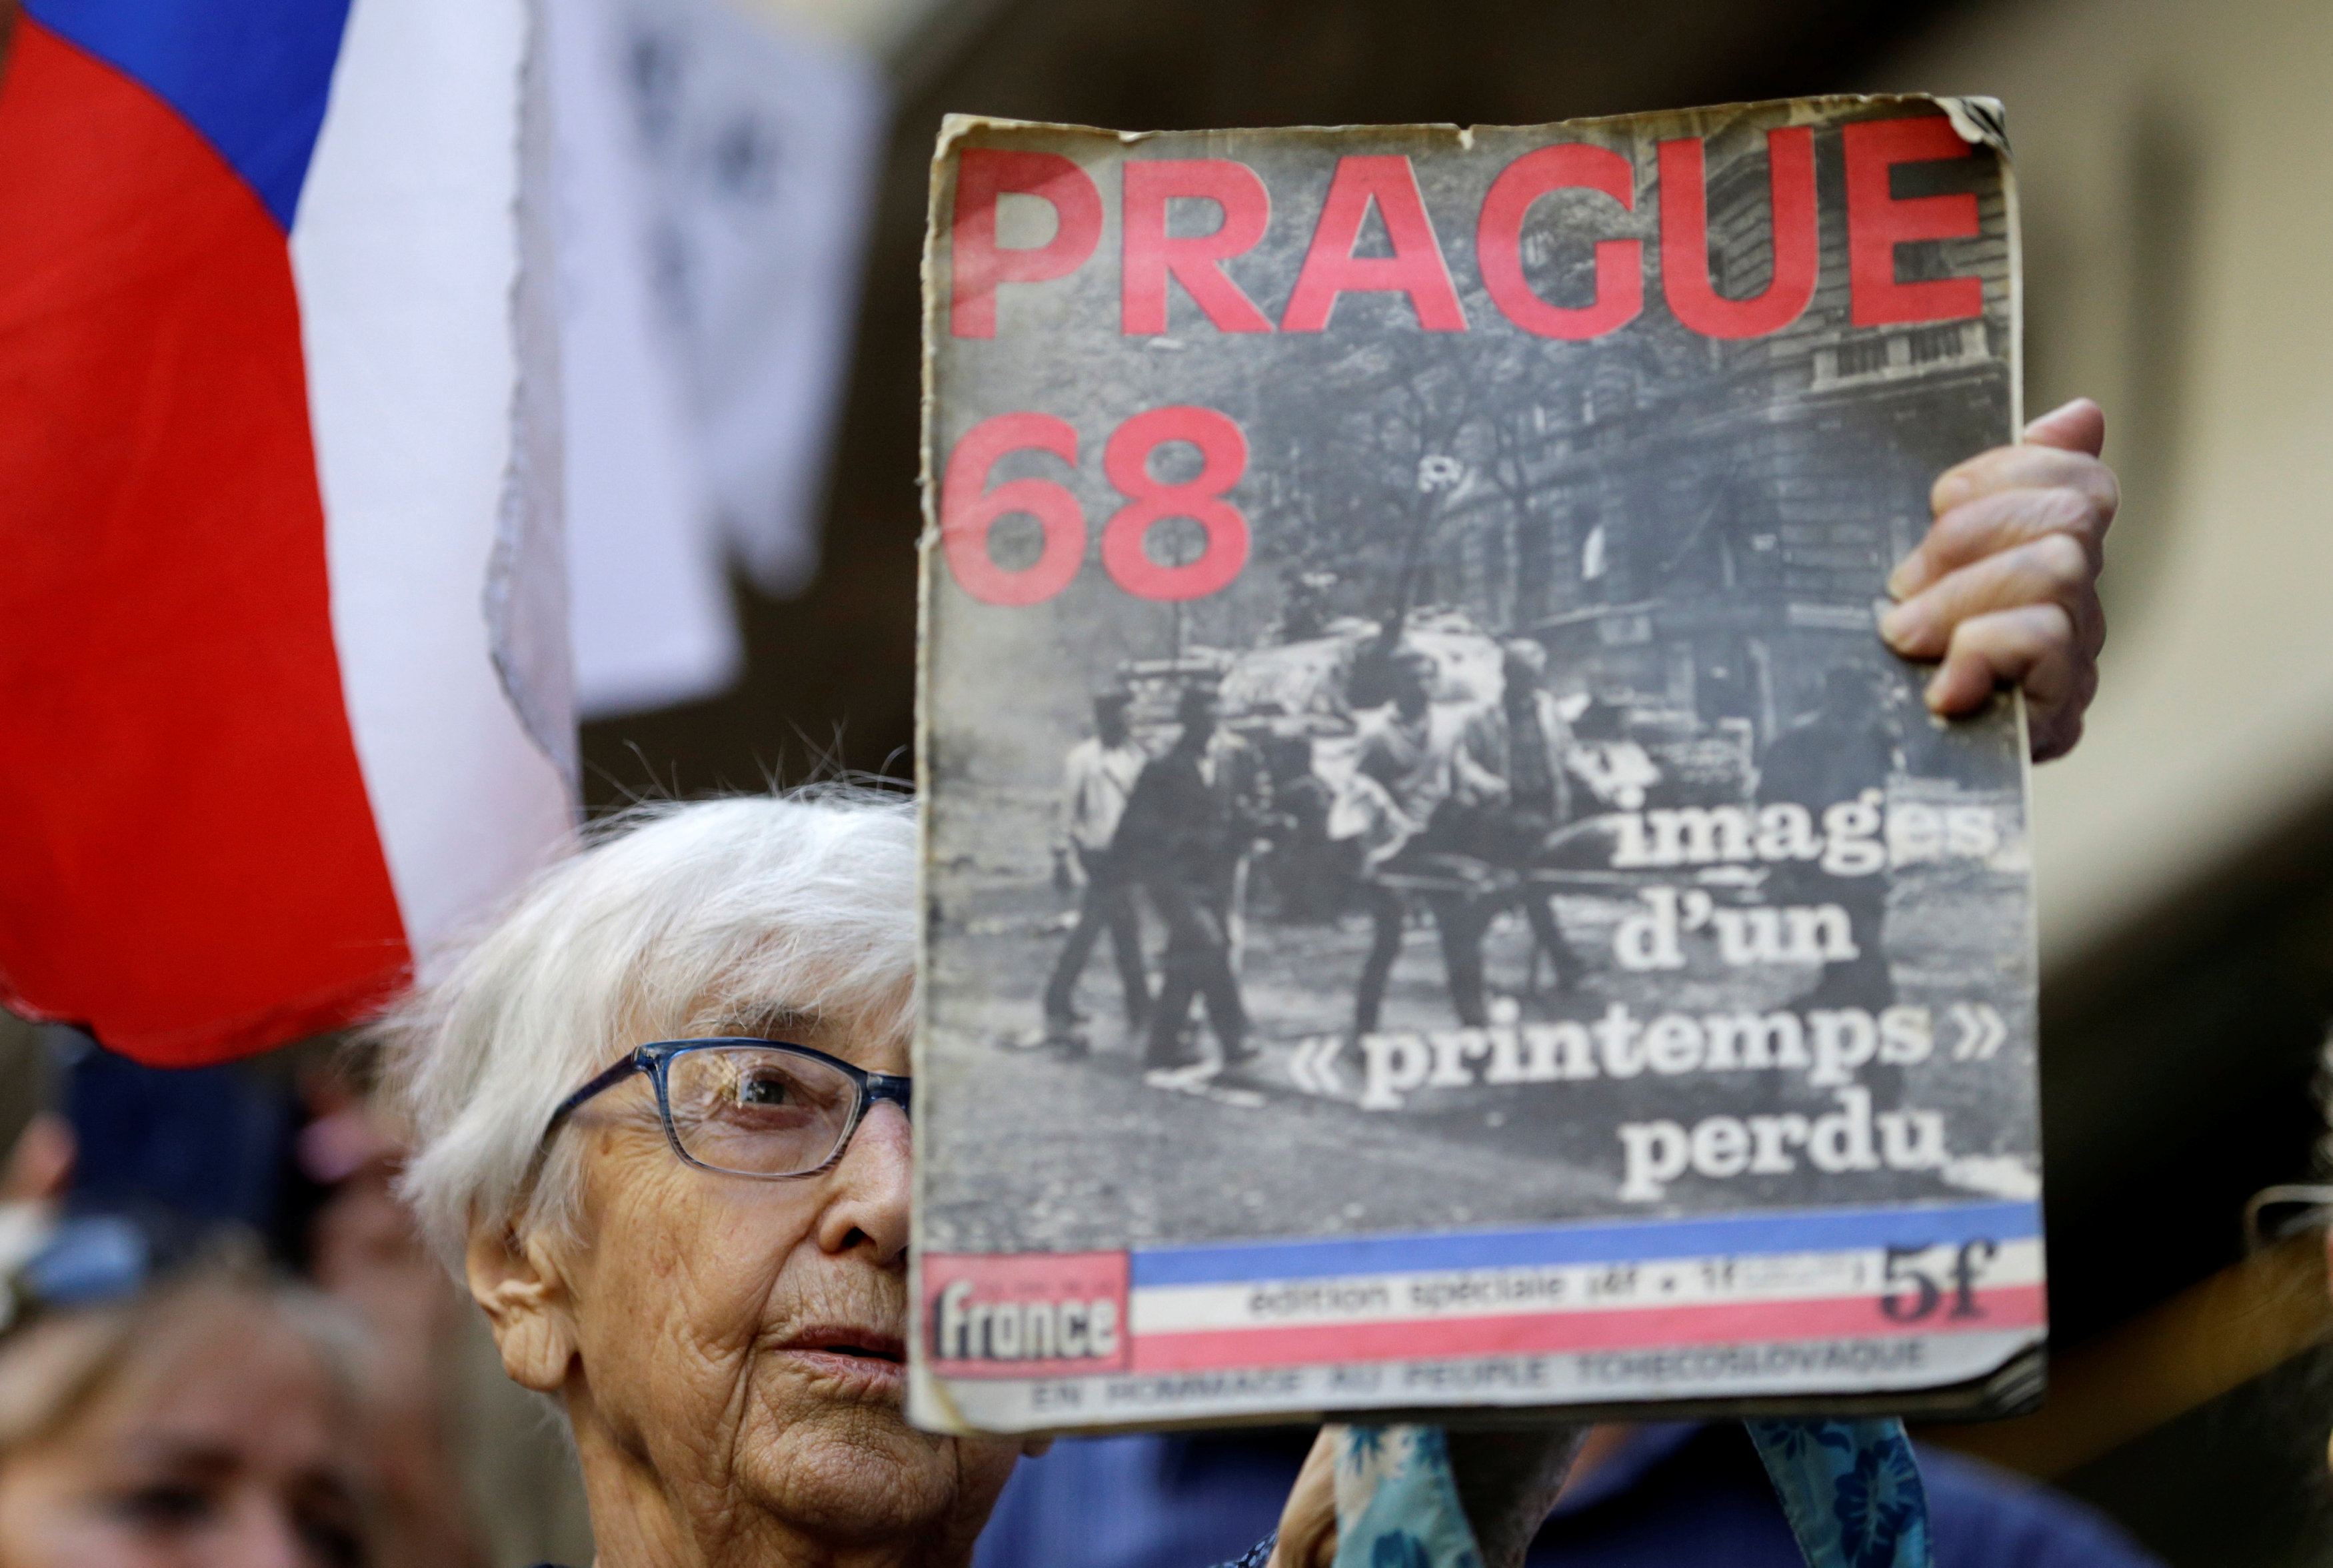 A demonstrator holds a placard as she protests.